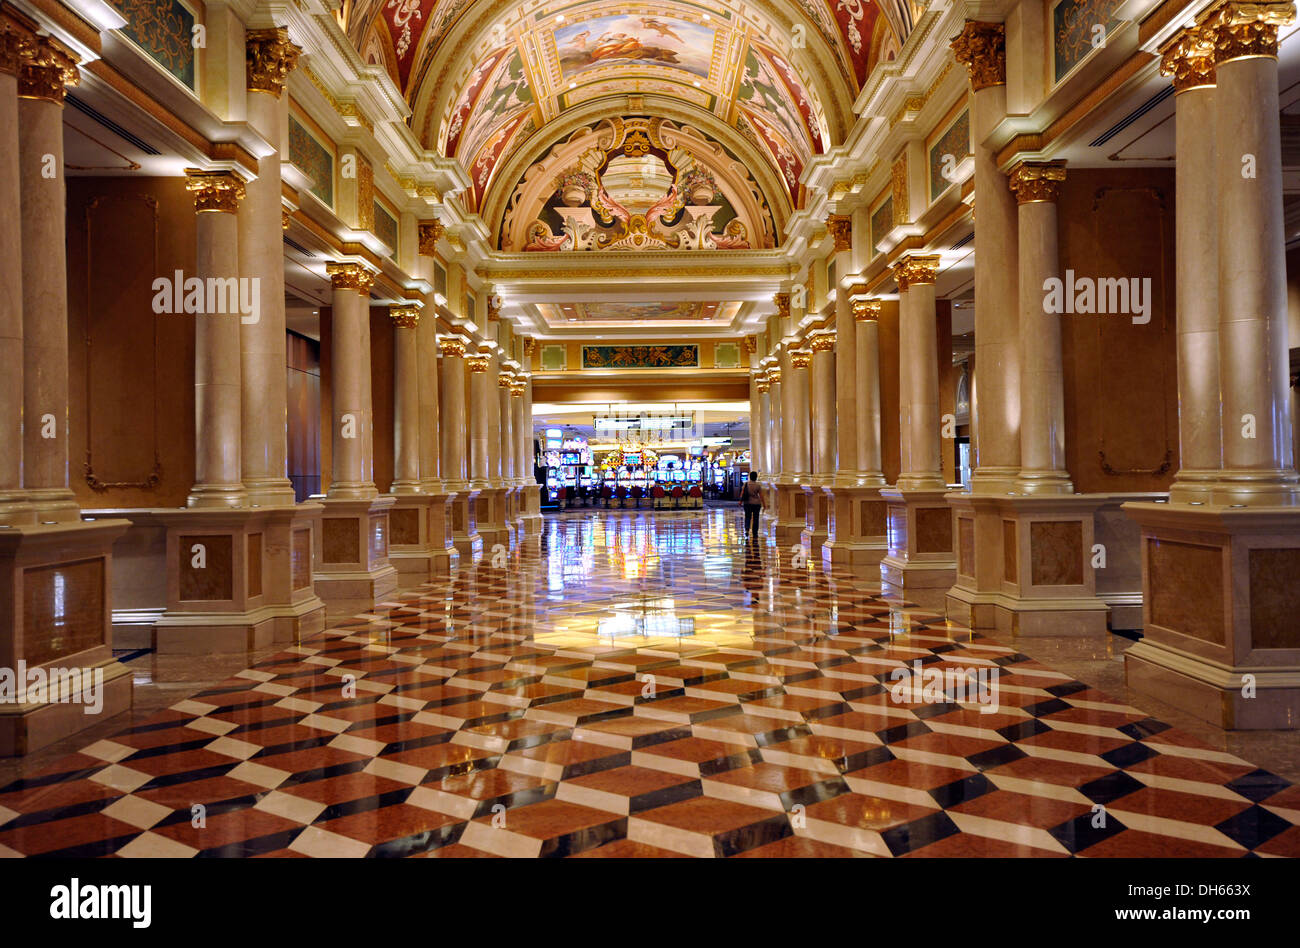 Hallway in front of a casino 5 star luxury hotel the venetian casino